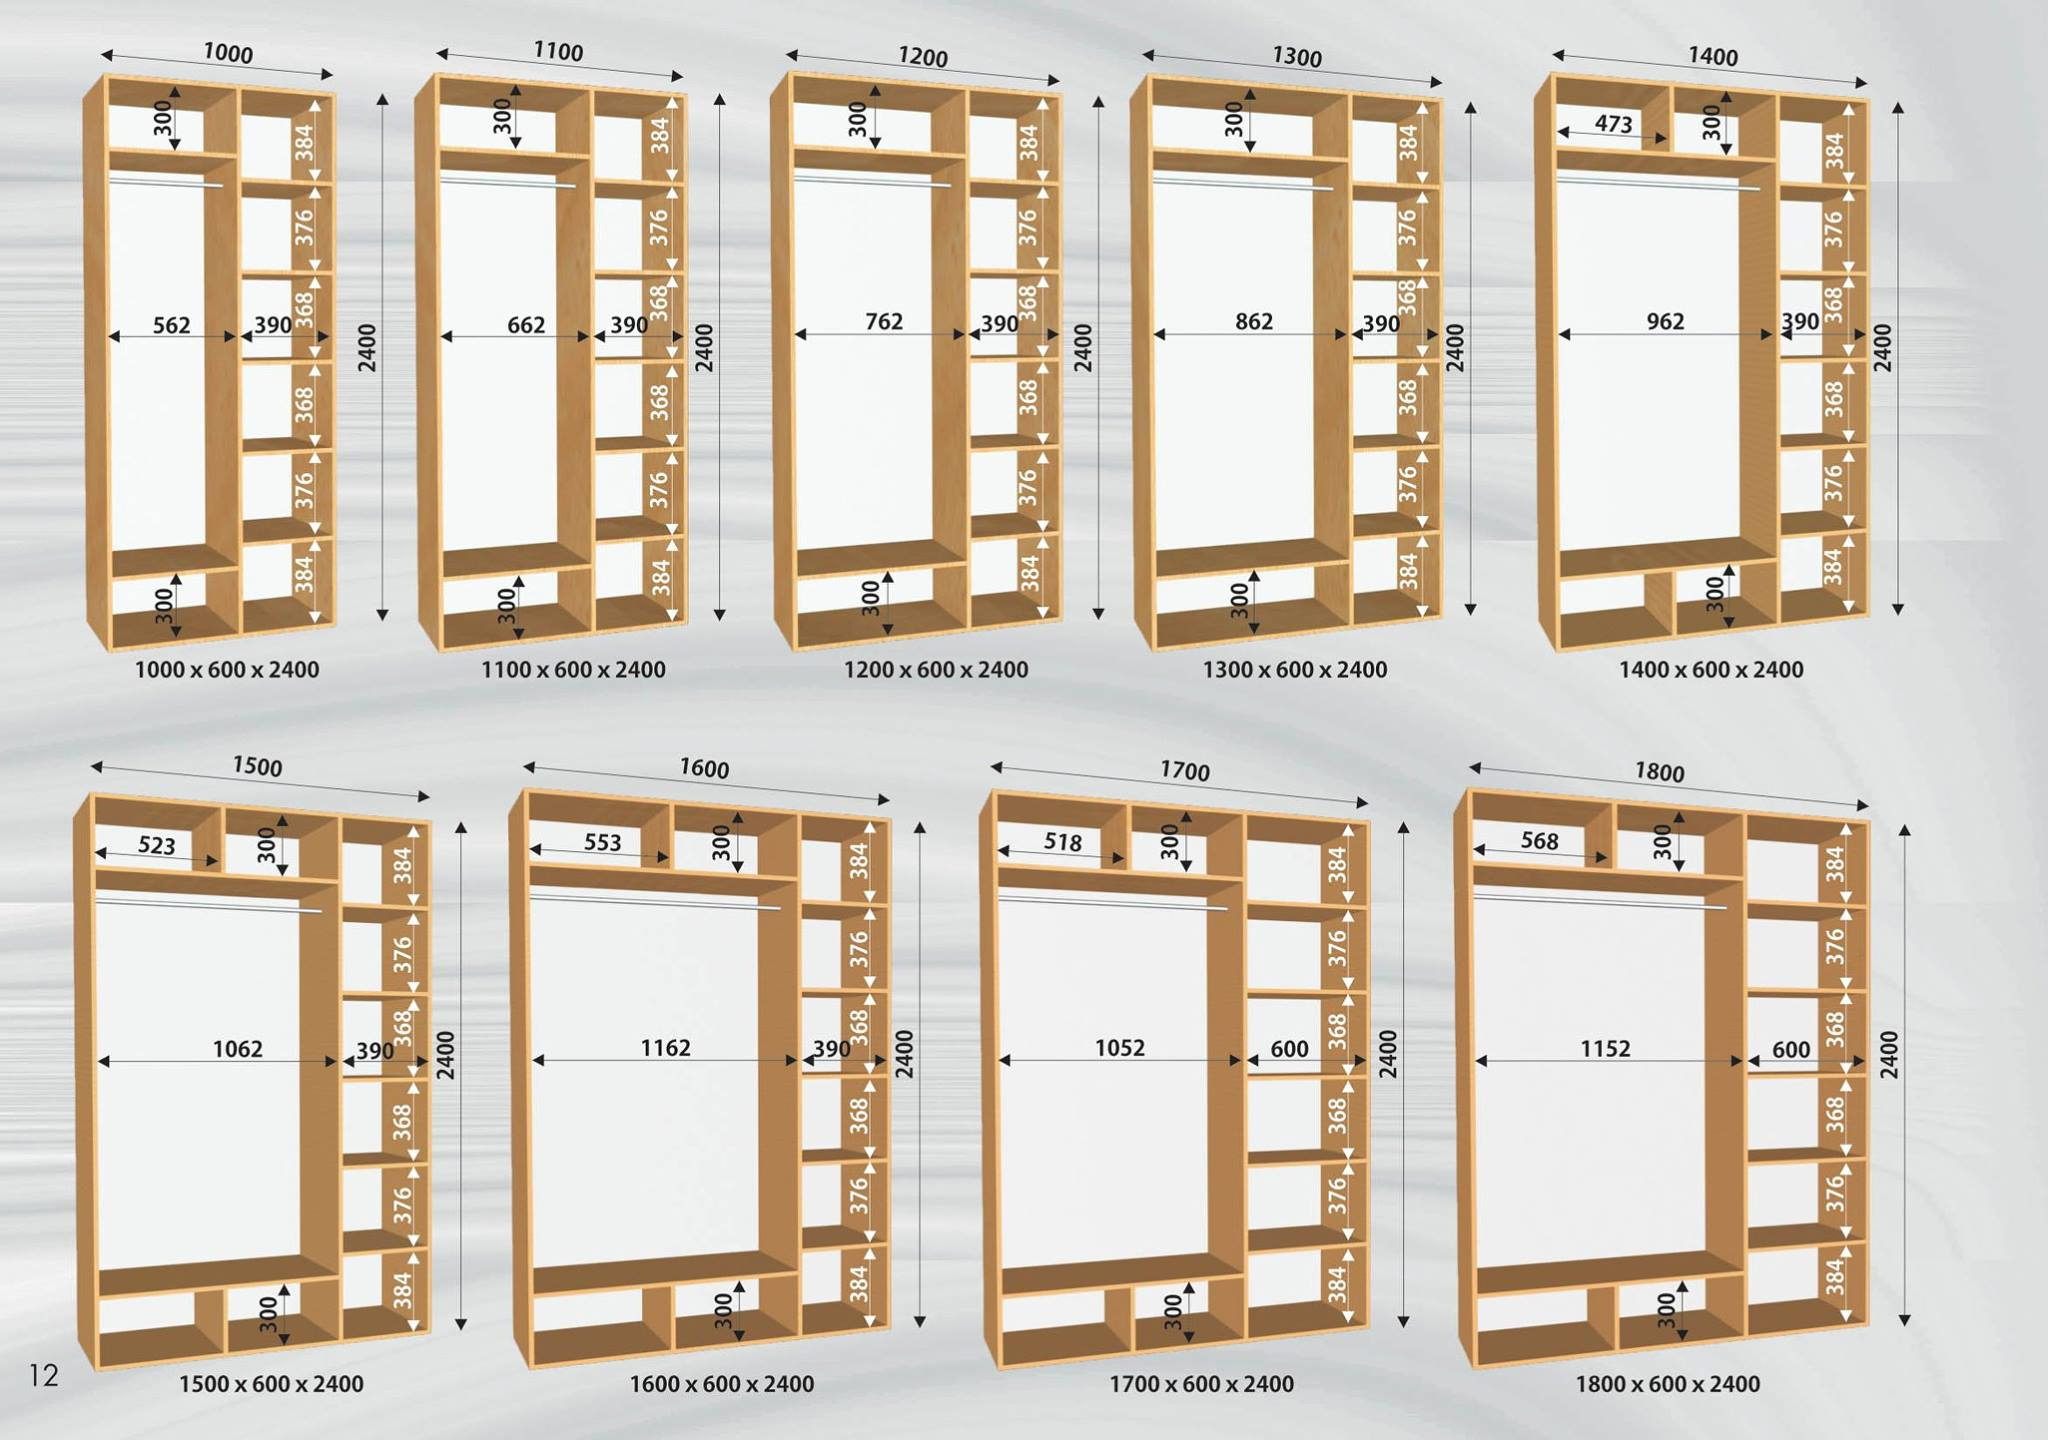 Medidas de closets de mdf triplay o madera for Interiores de closet de madera